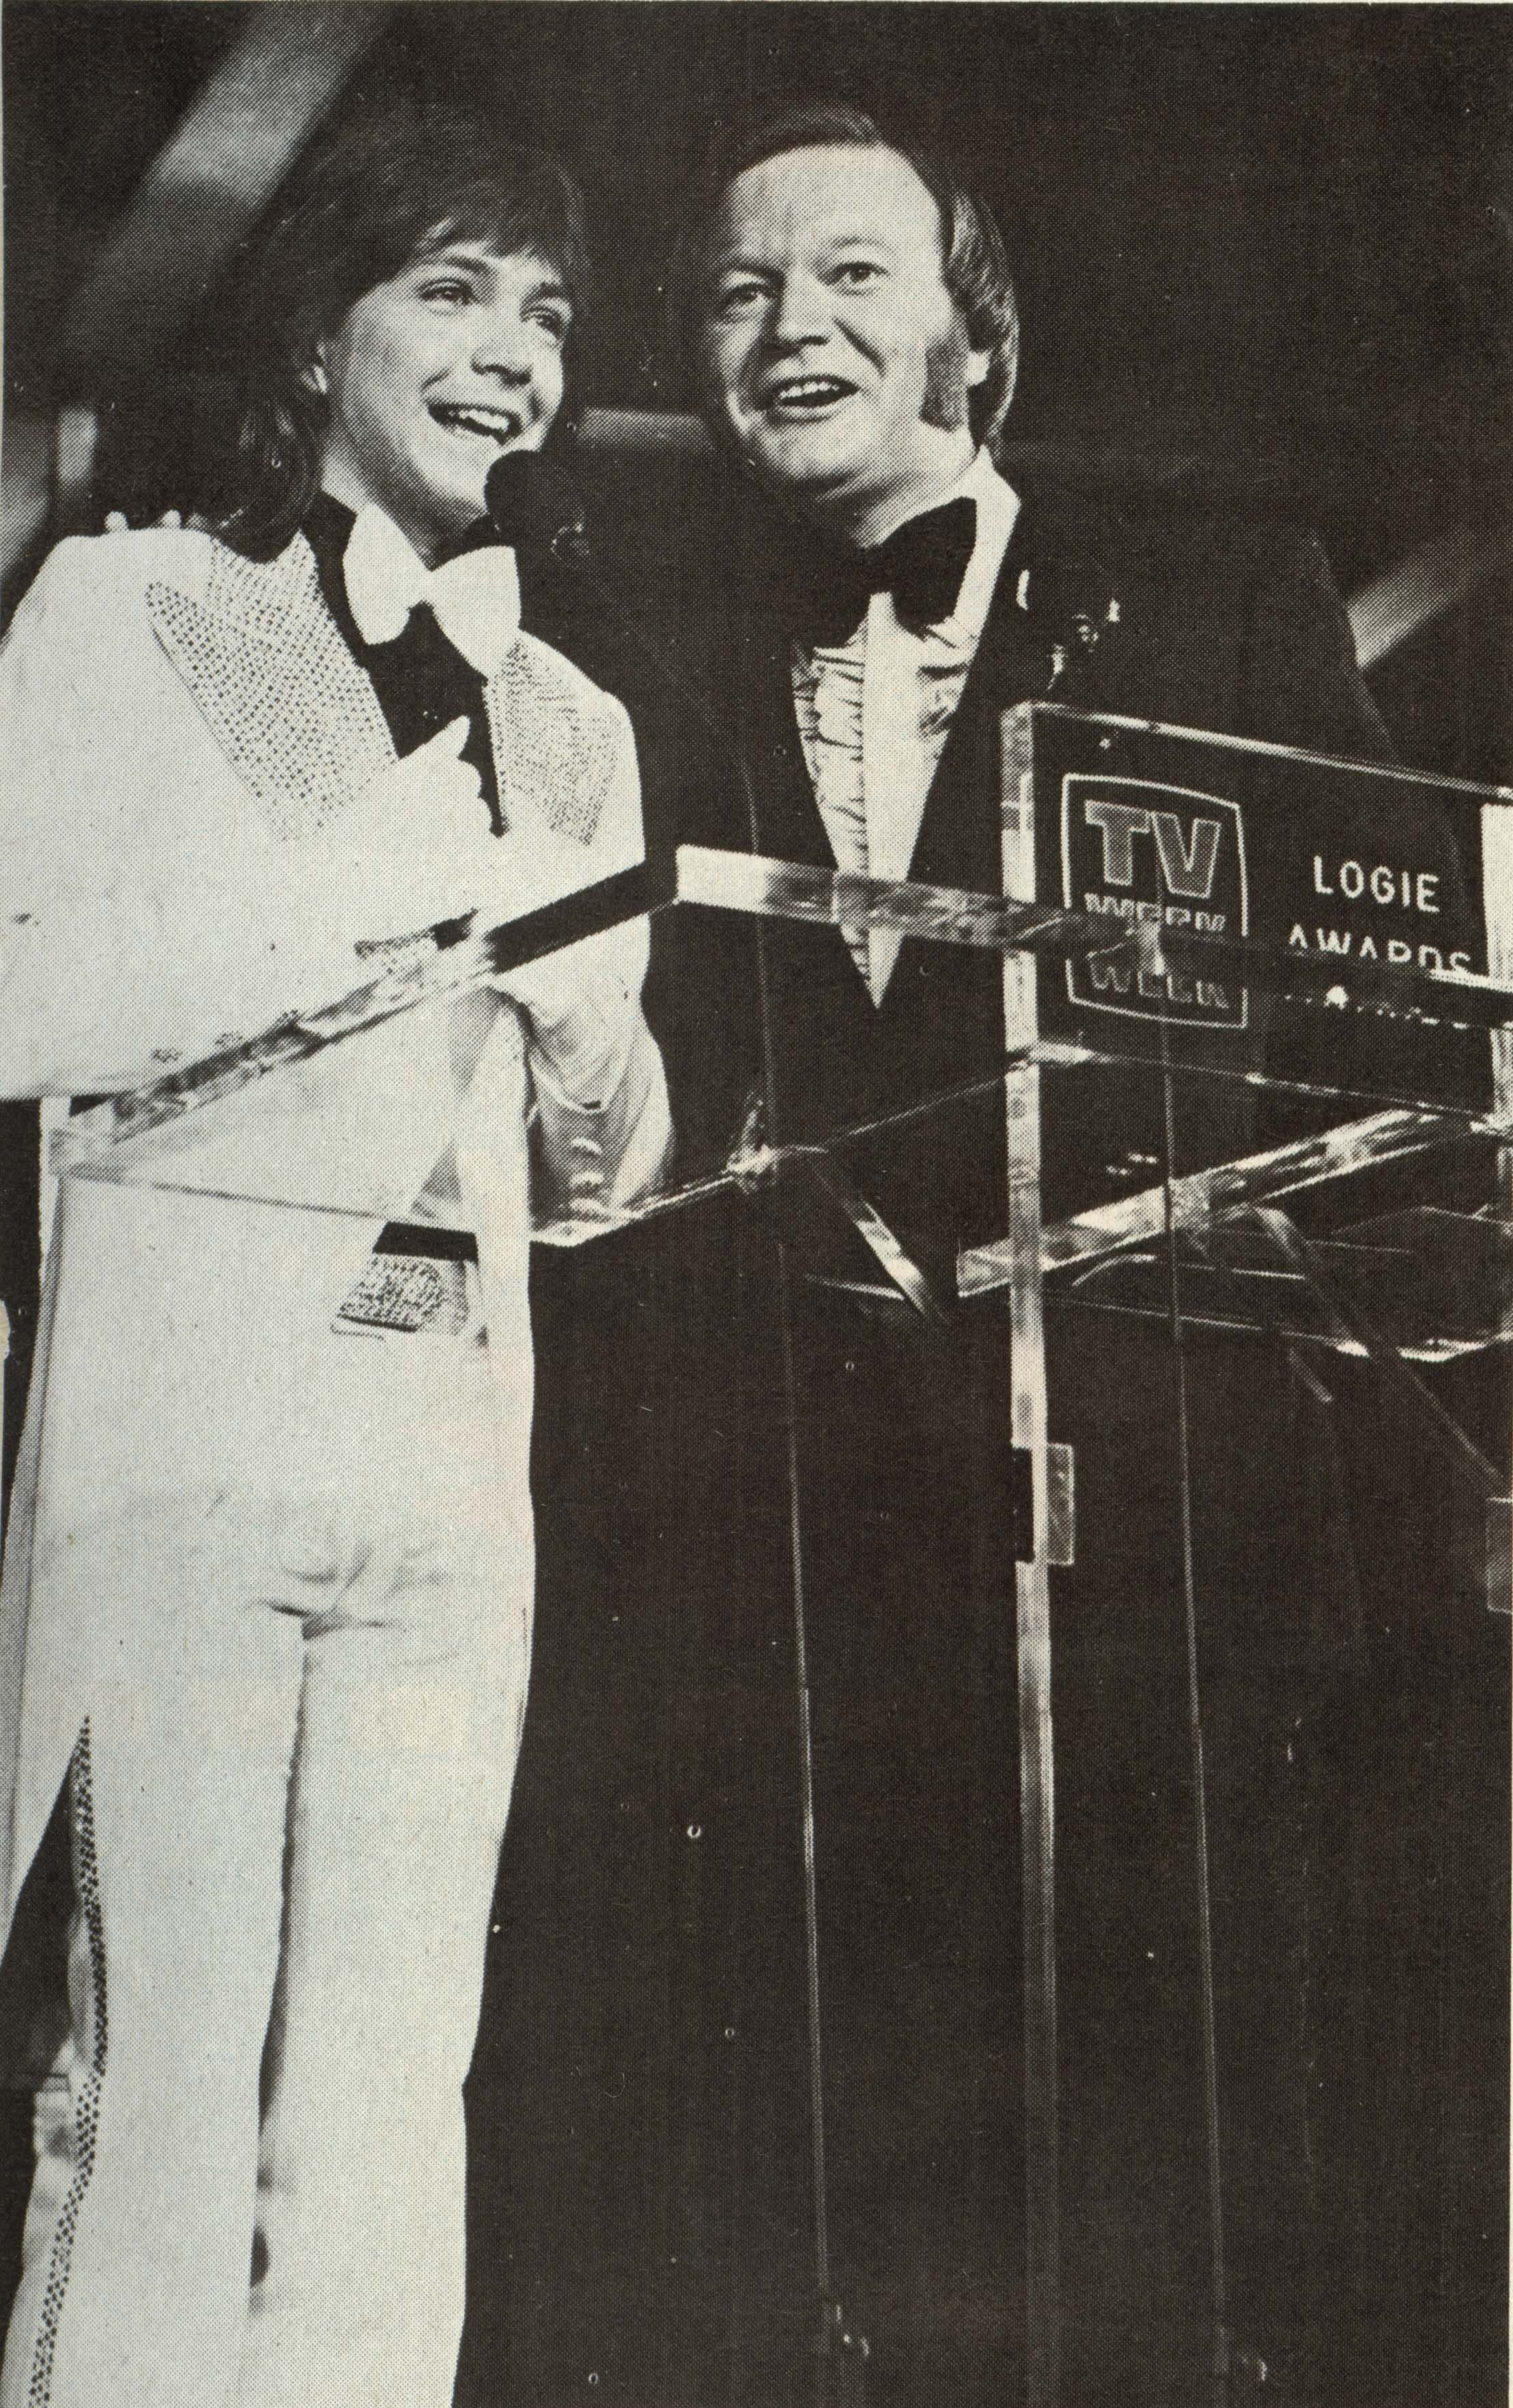 1974March 8th Logie Awards